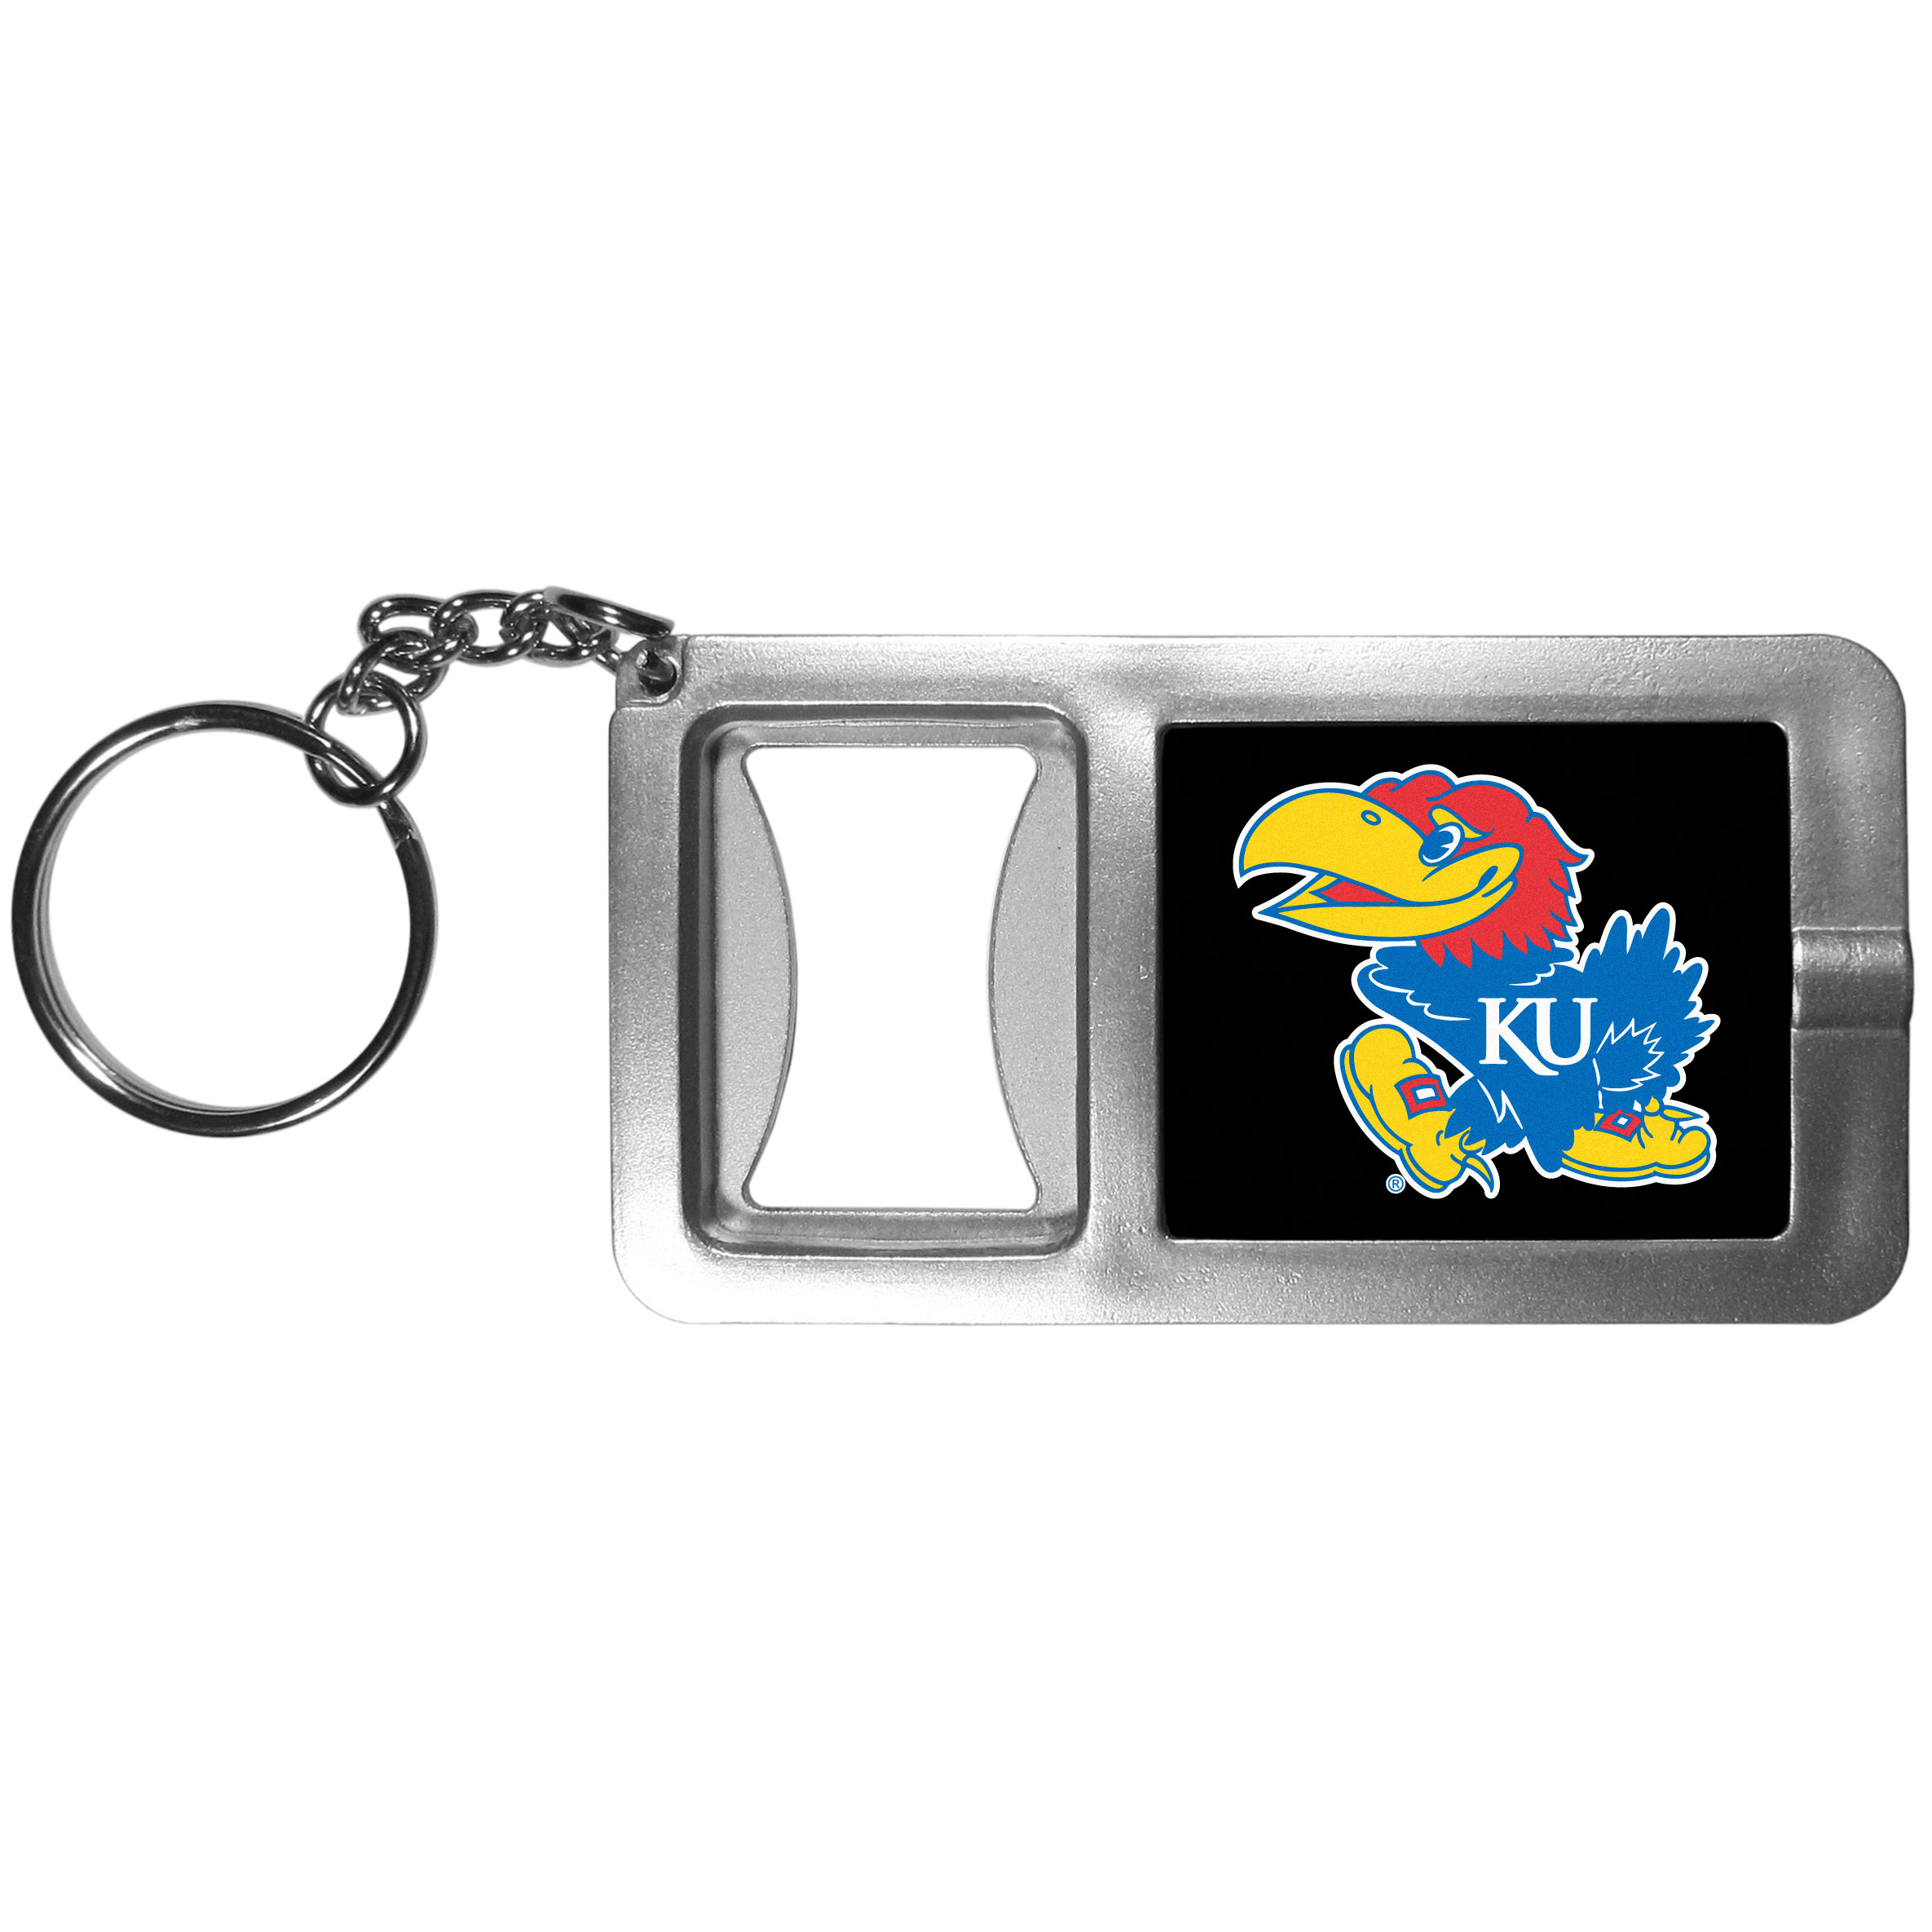 Kansas Jayhawks Flashlight Key Chain with Bottle Opener - Never be without light with our Kansas Jayhawks flashlight keychain that features a handy bottle opener feature. This versatile key chain is perfect for camping and travel and is a great way to show off your team pride!